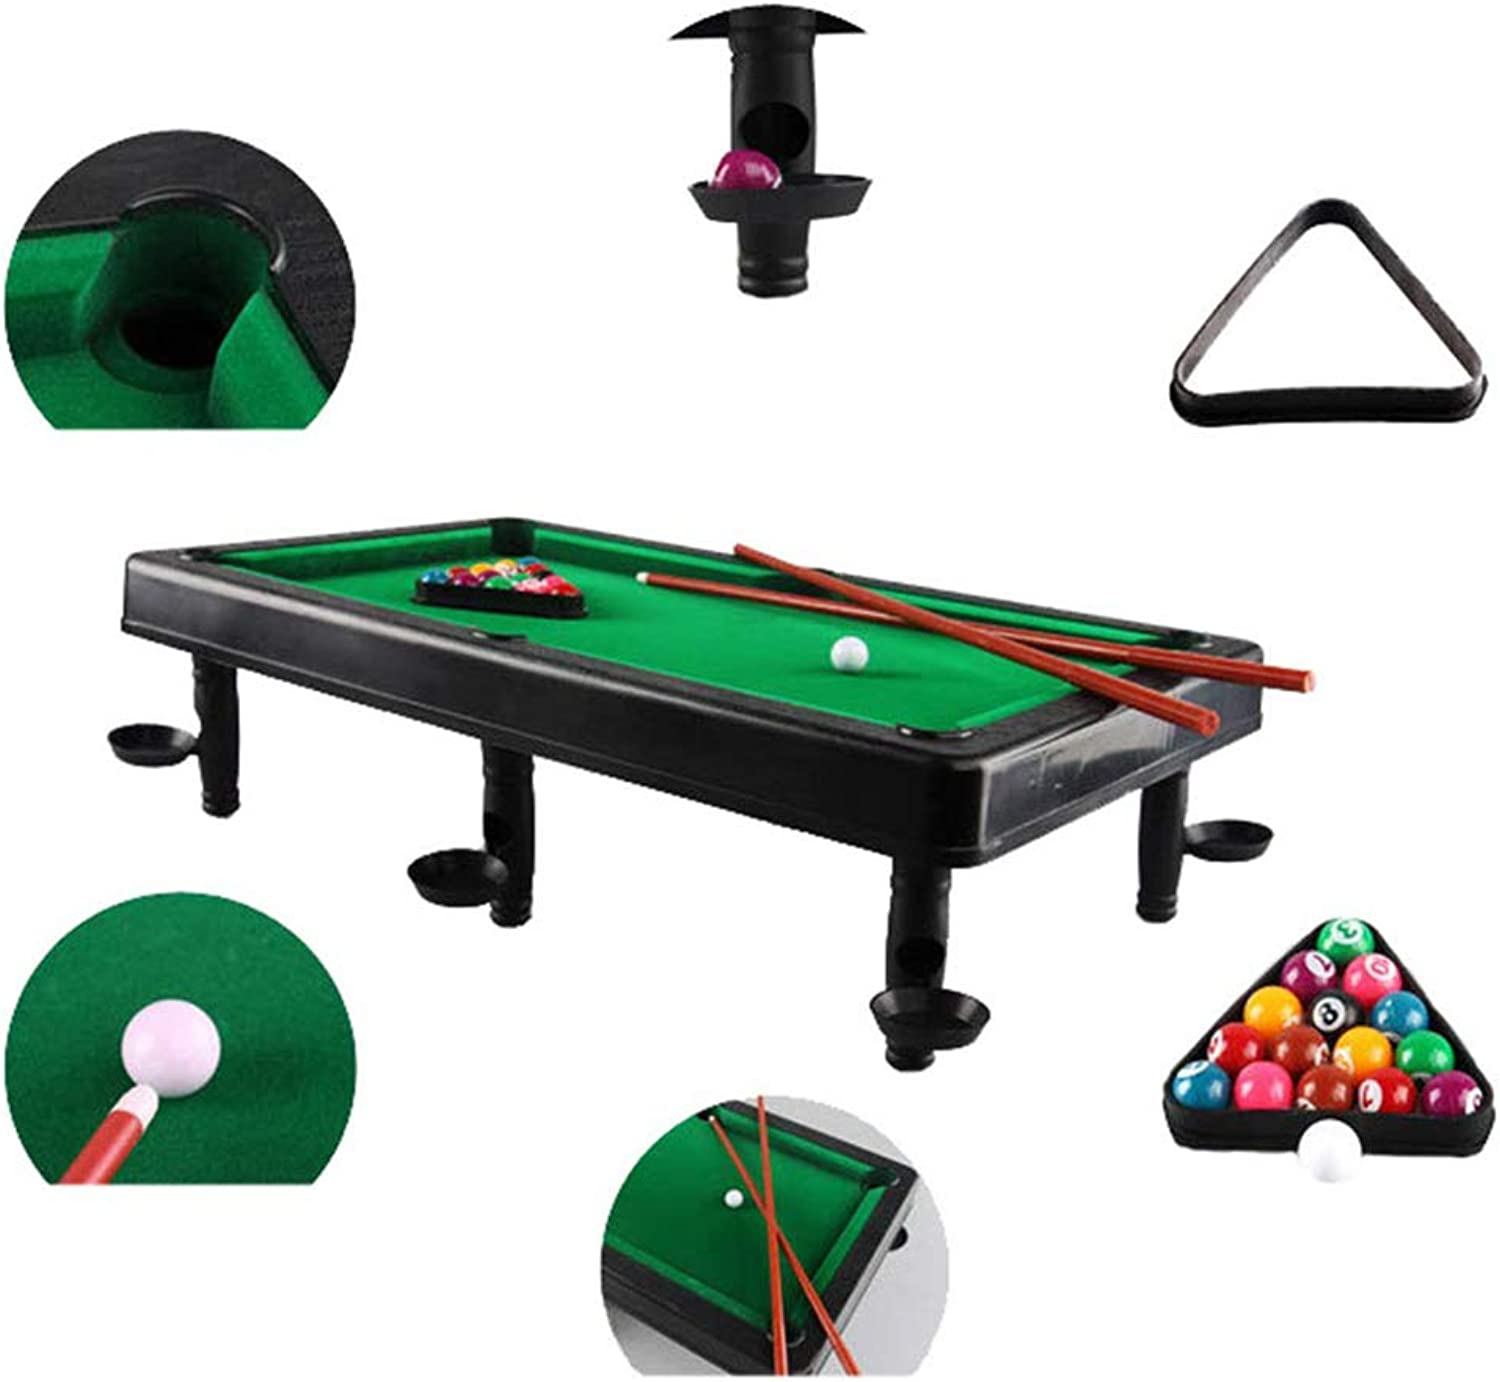 NBZH Min Billiards– the classic pool table set Kids Indoor Toy Sports Game With Balls And Other Accessories